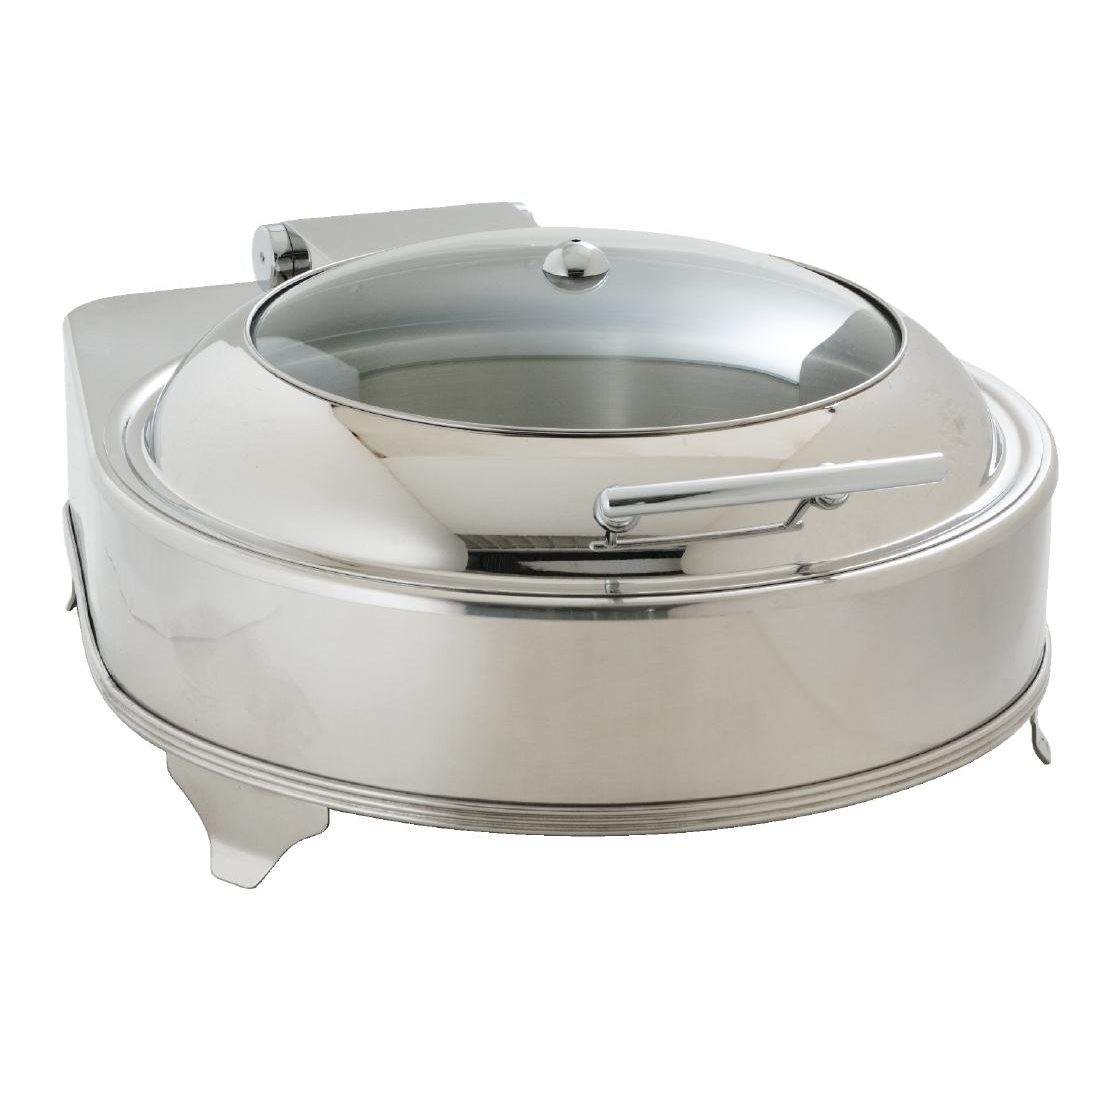 Chafing dish électrique rond inox